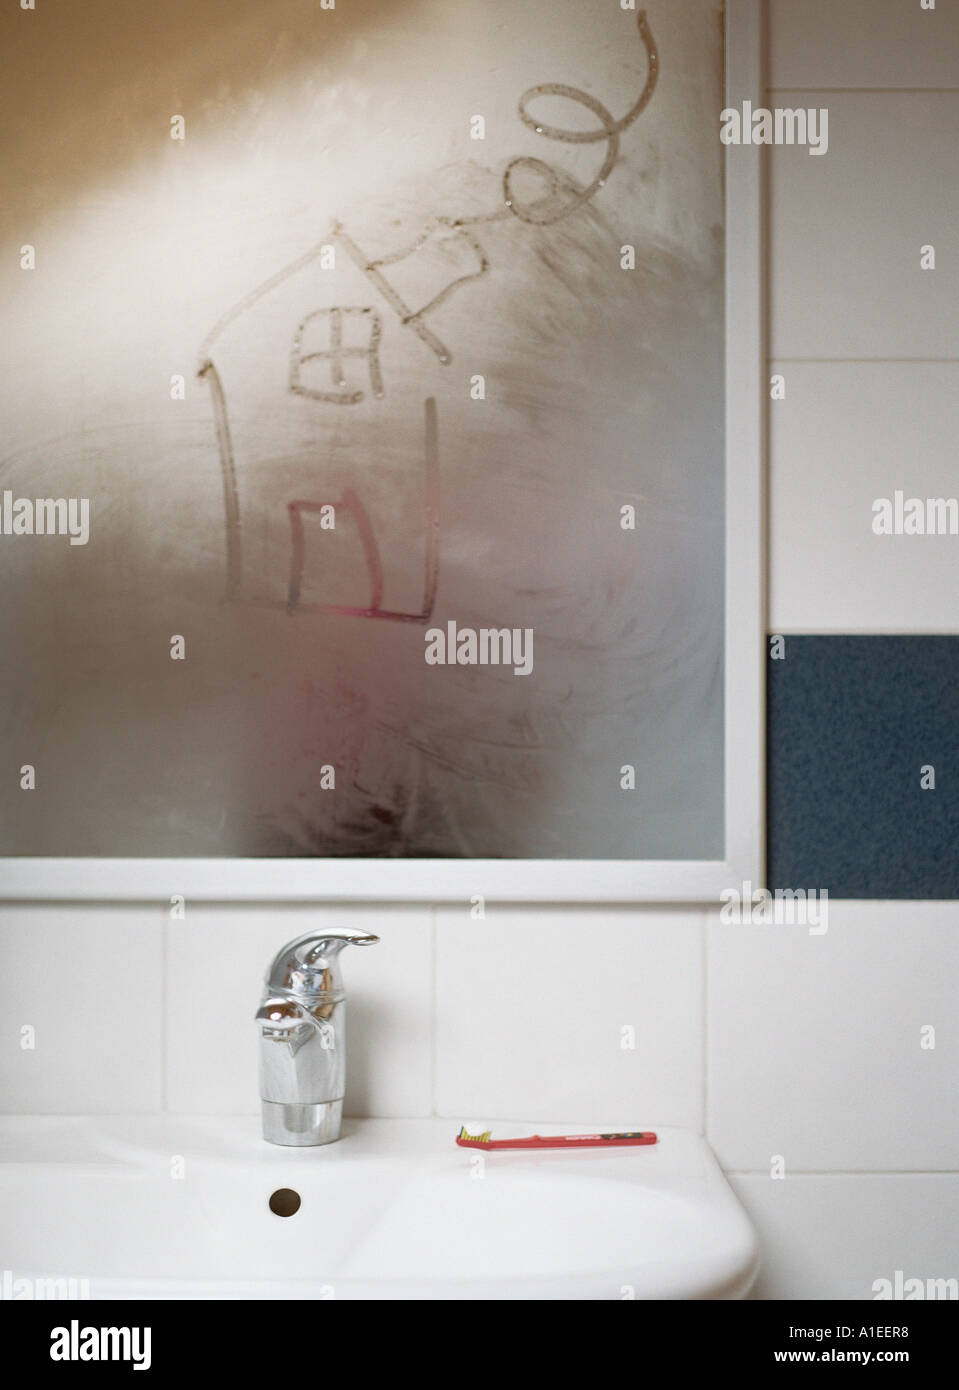 House drawn in condensation on bathroom mirror   Stock Image. Condensation Bathroom Stock Photos   Condensation Bathroom Stock